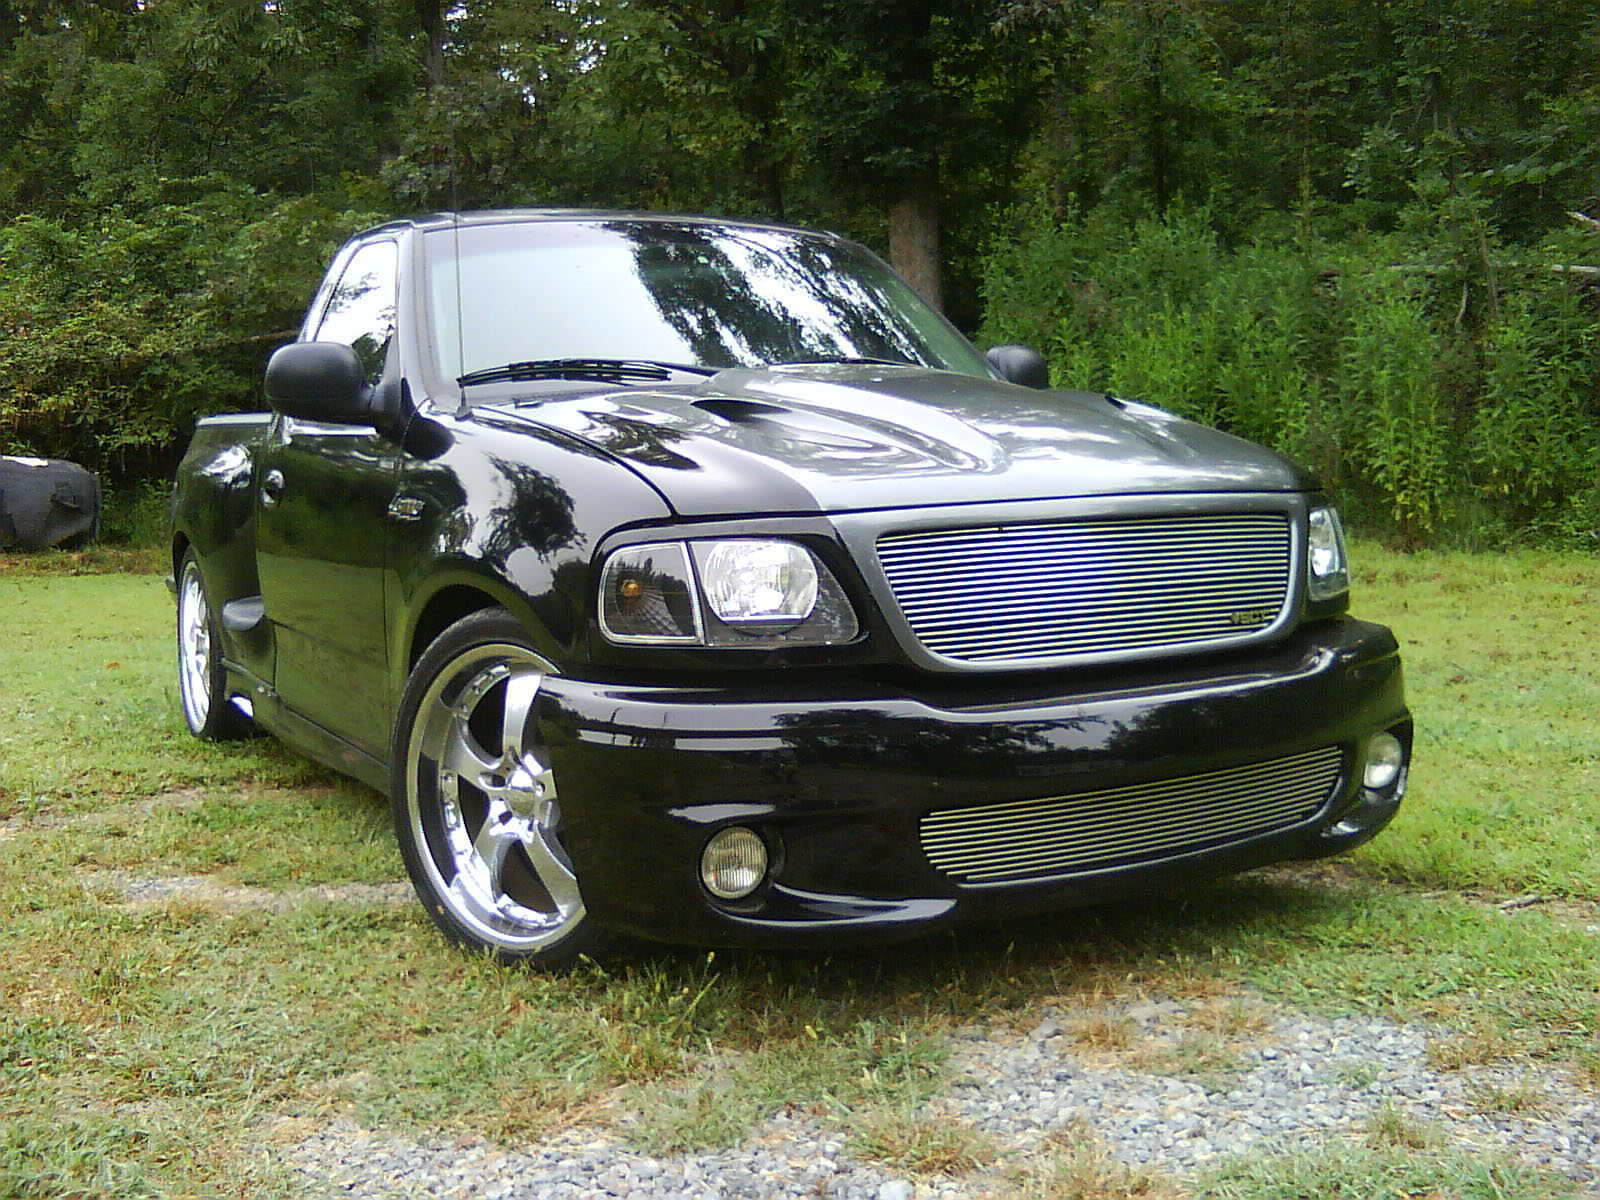 Ford F-150 1998 photo - 4